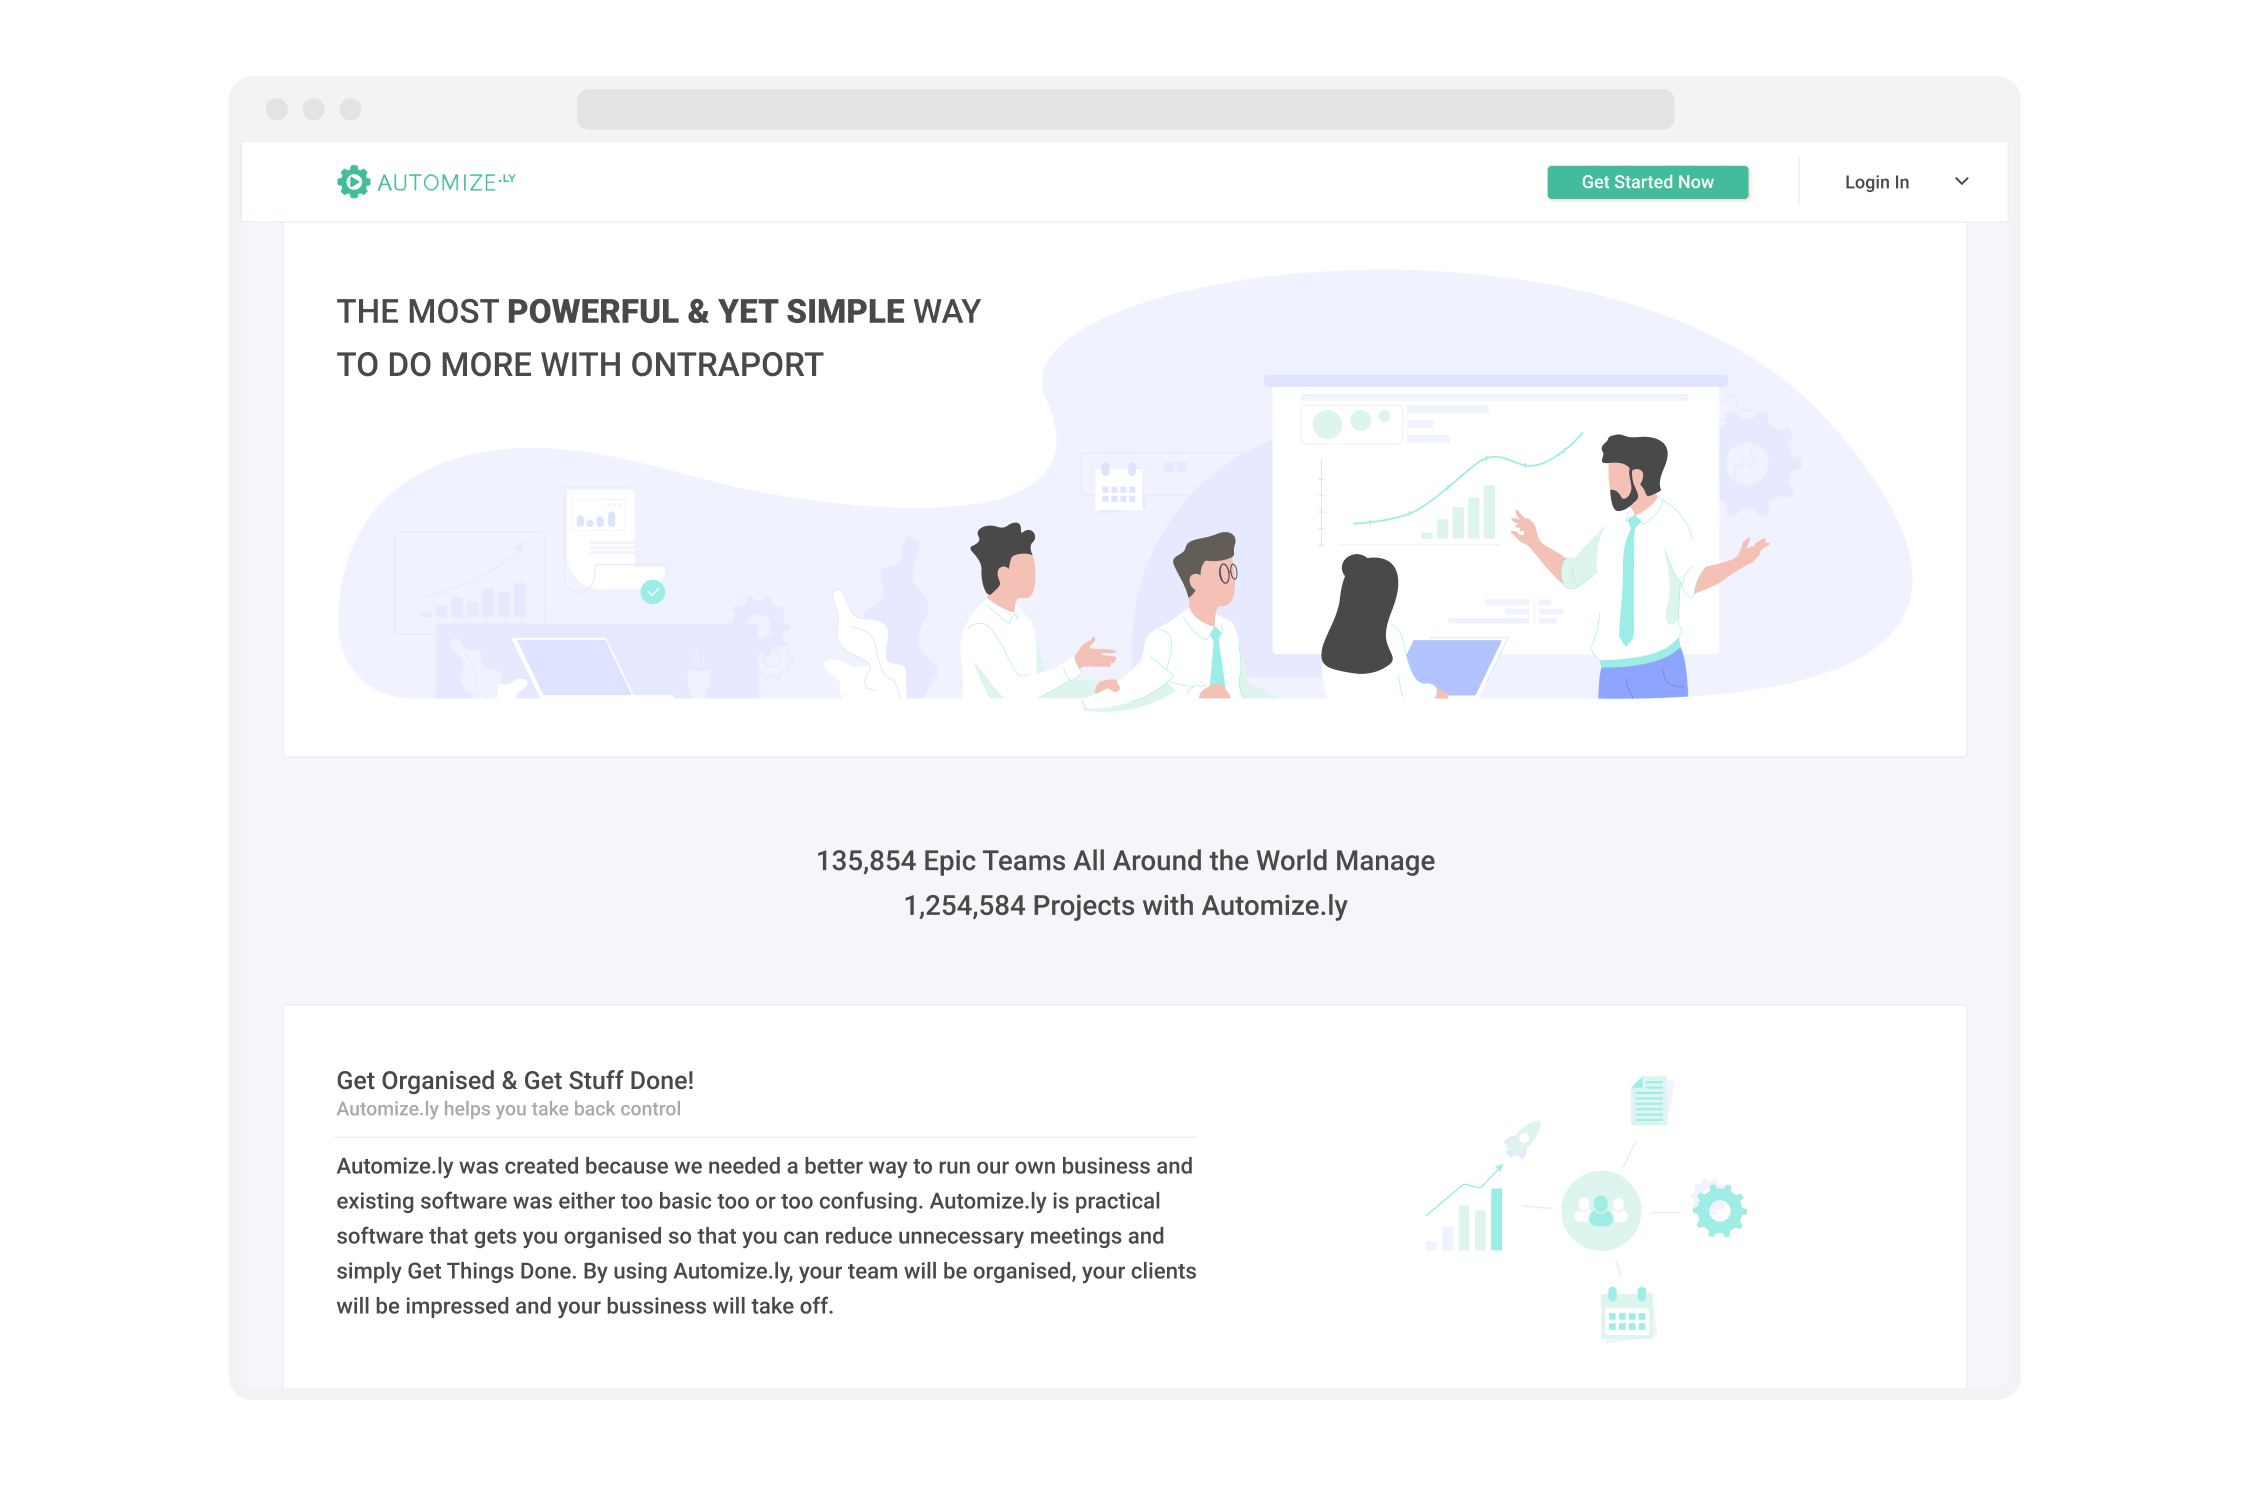 Landing page for Automizely, a marketing automation platform for e-commerce businesses